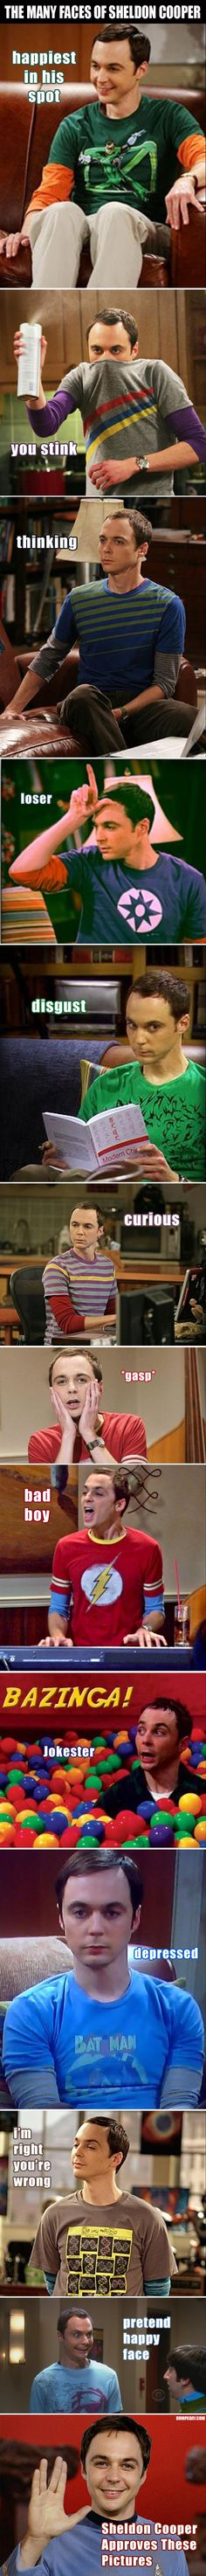 The Many Faces Of Sheldon Cooper